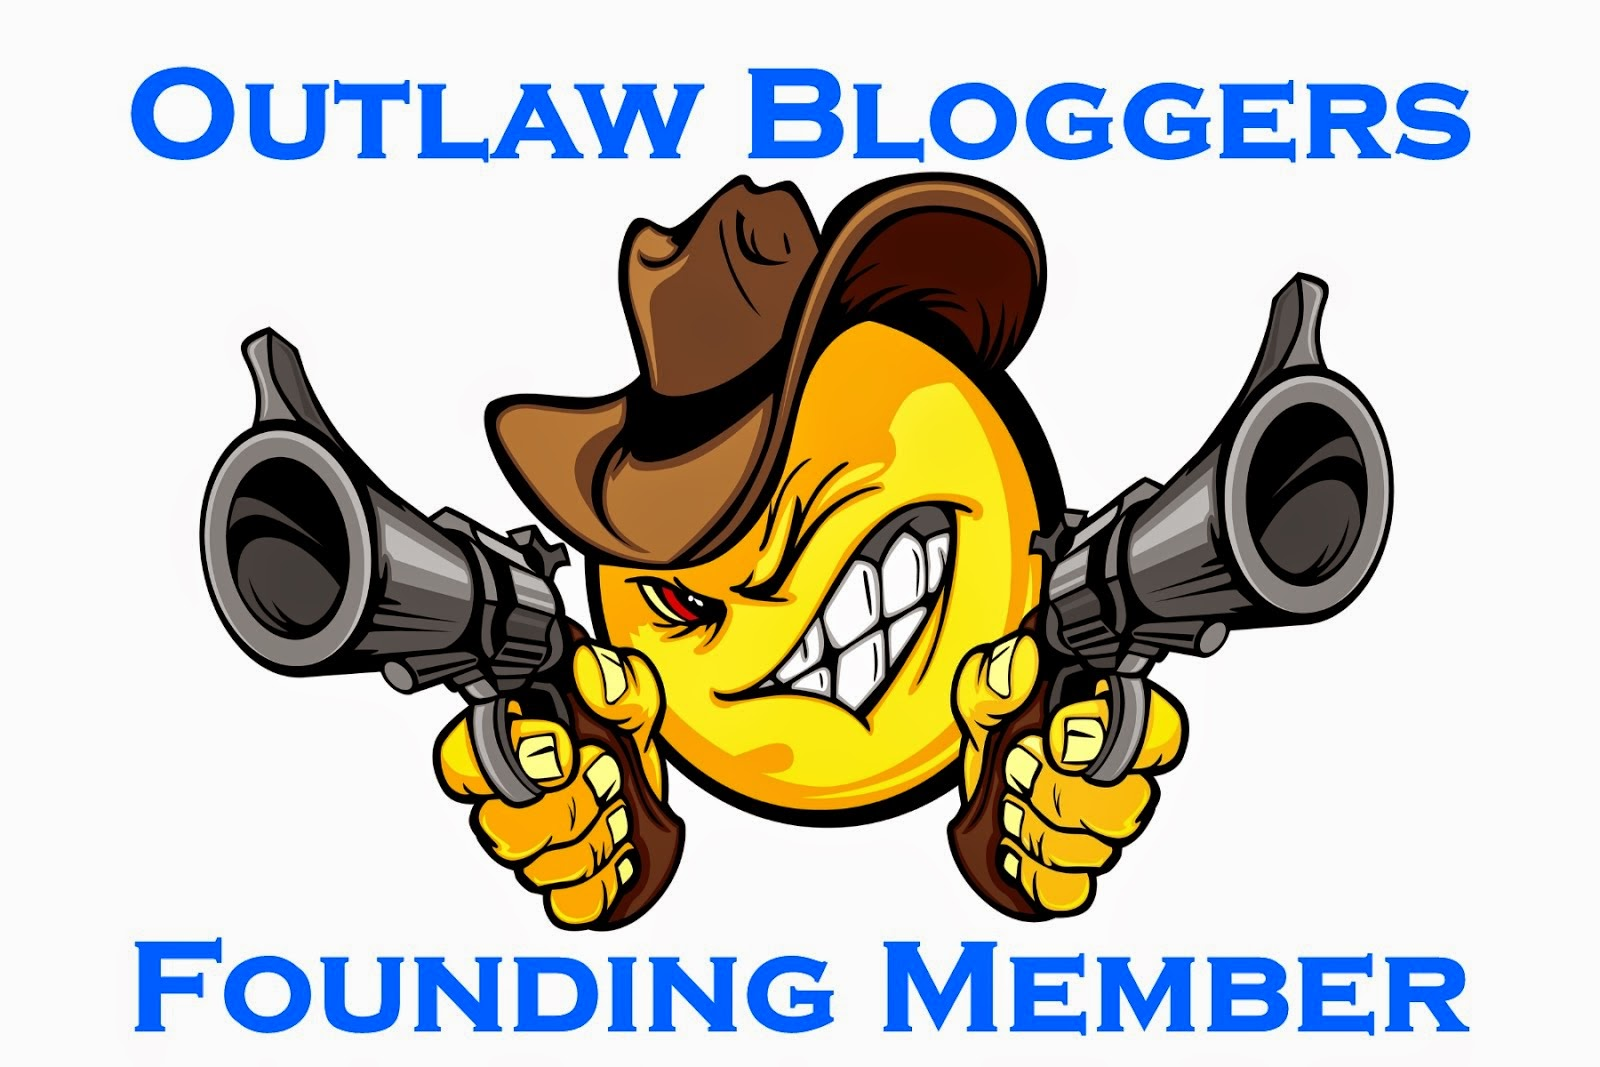 Founder: Outlaw Bloggers